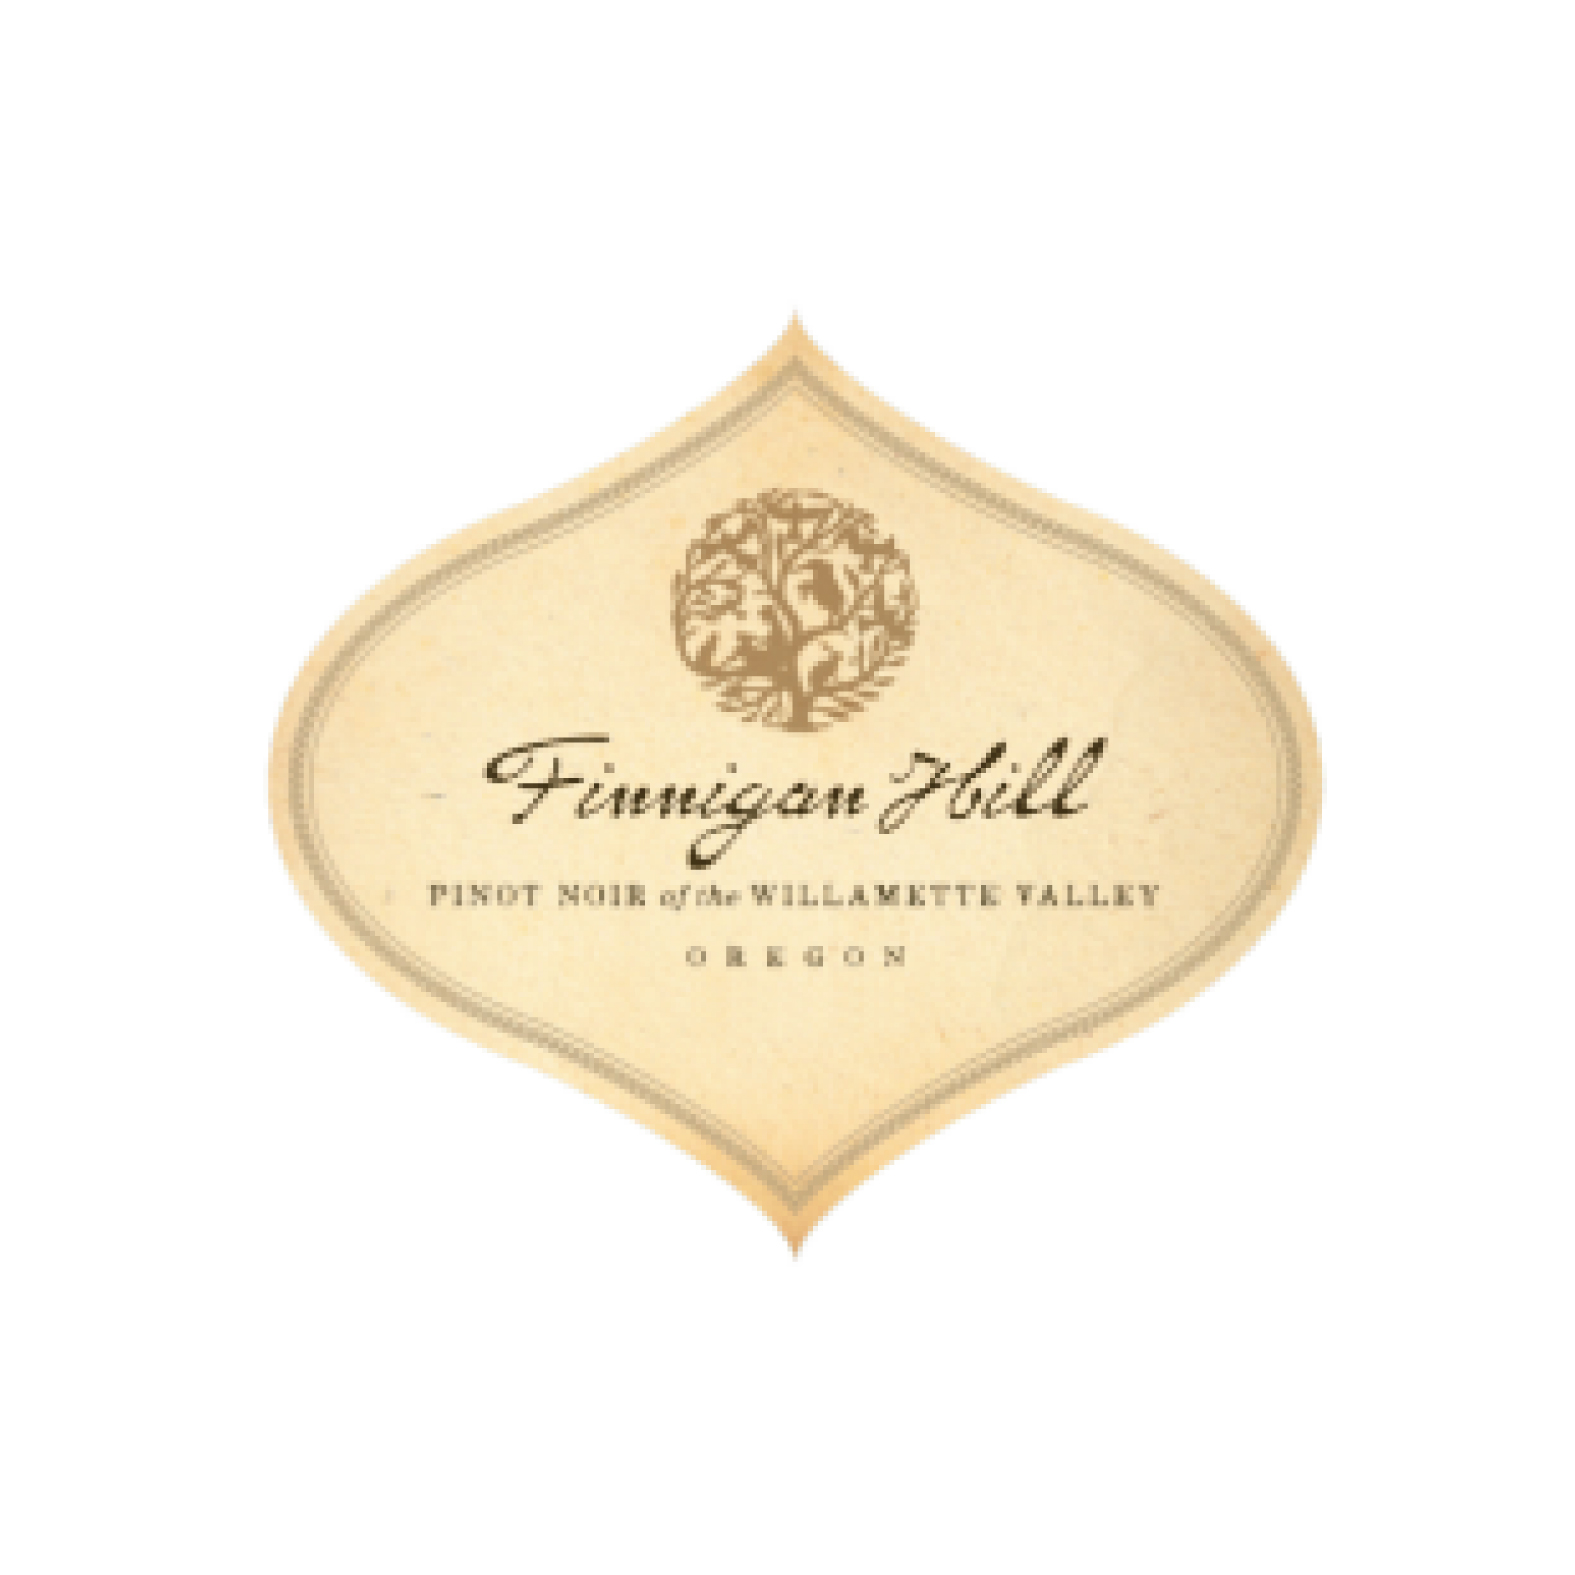 Finnigan Hill-01.jpg